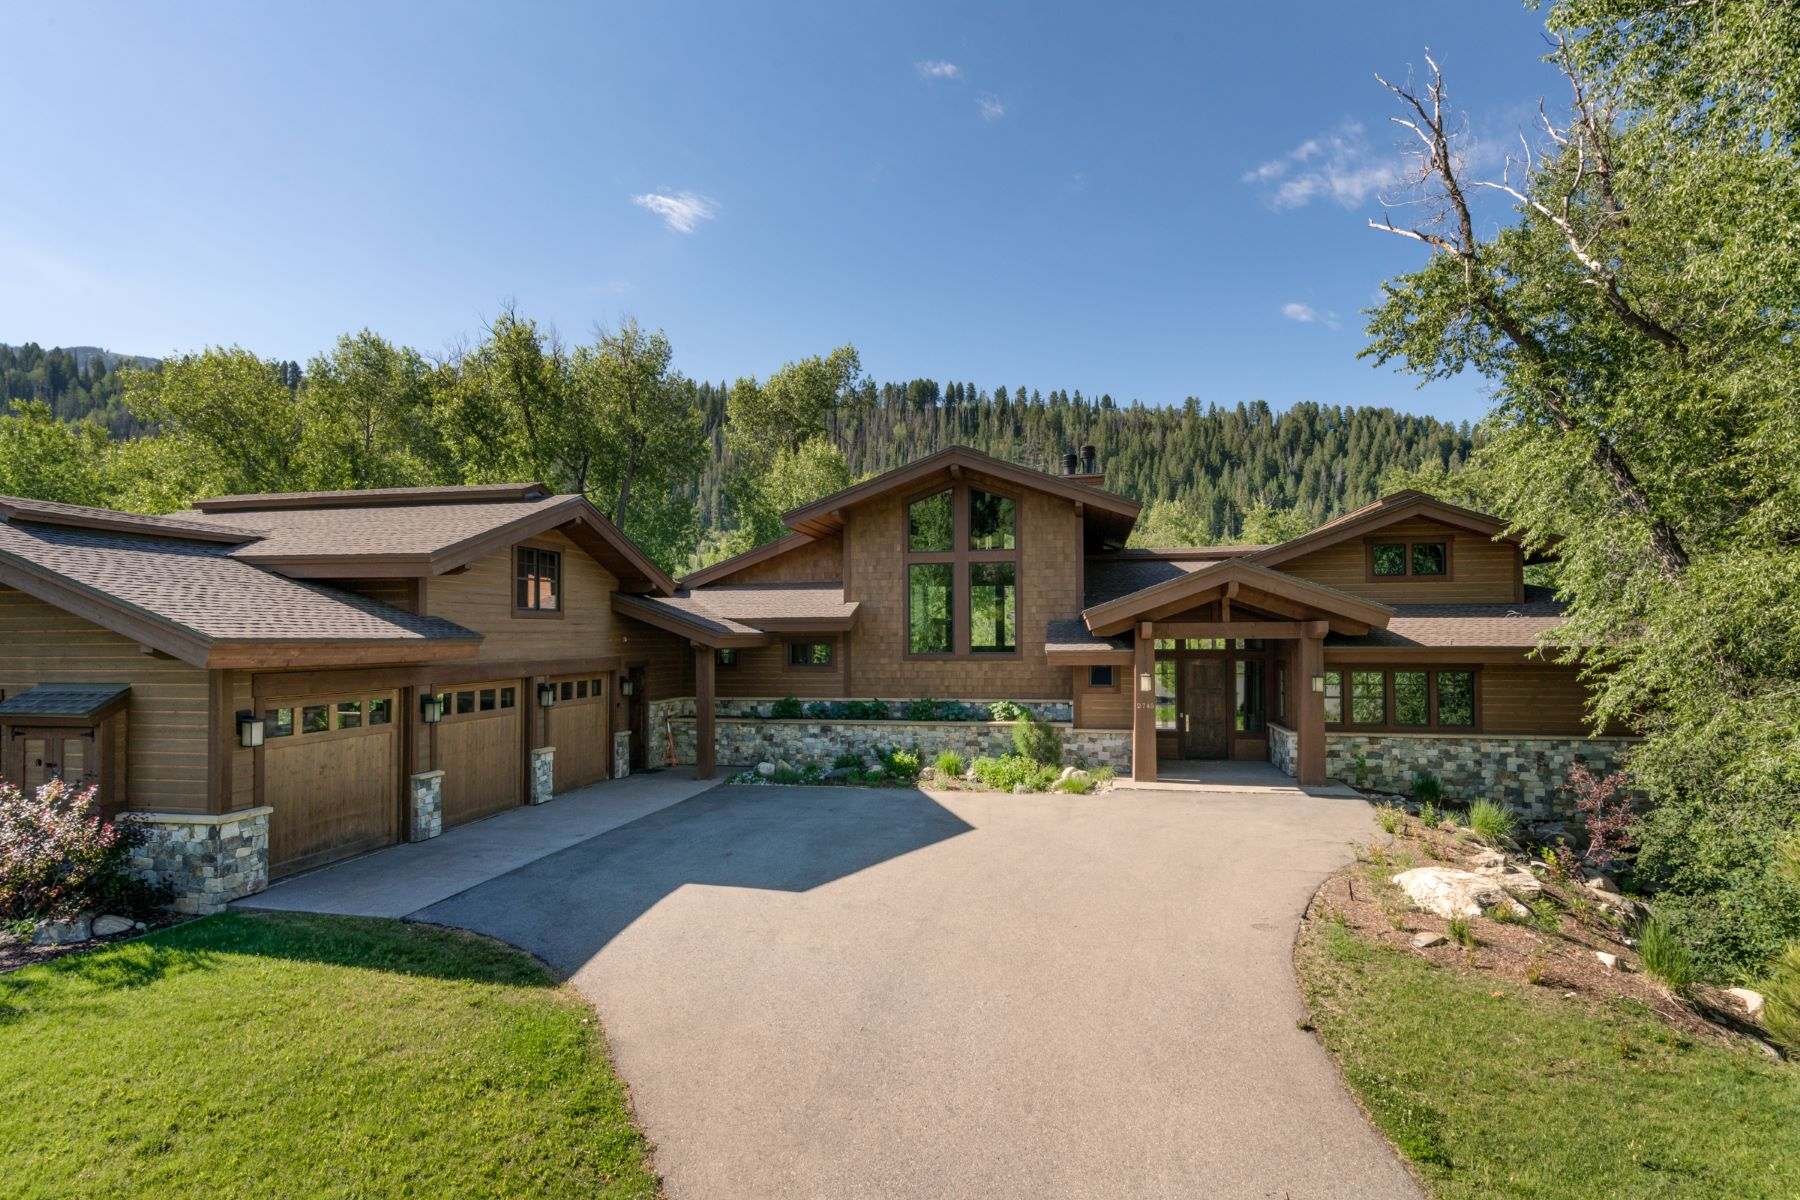 Single Family Home for Sale at Sanctuary on the Creek 2745 Whitewater Lane Steamboat Springs, Colorado, 80487 United States